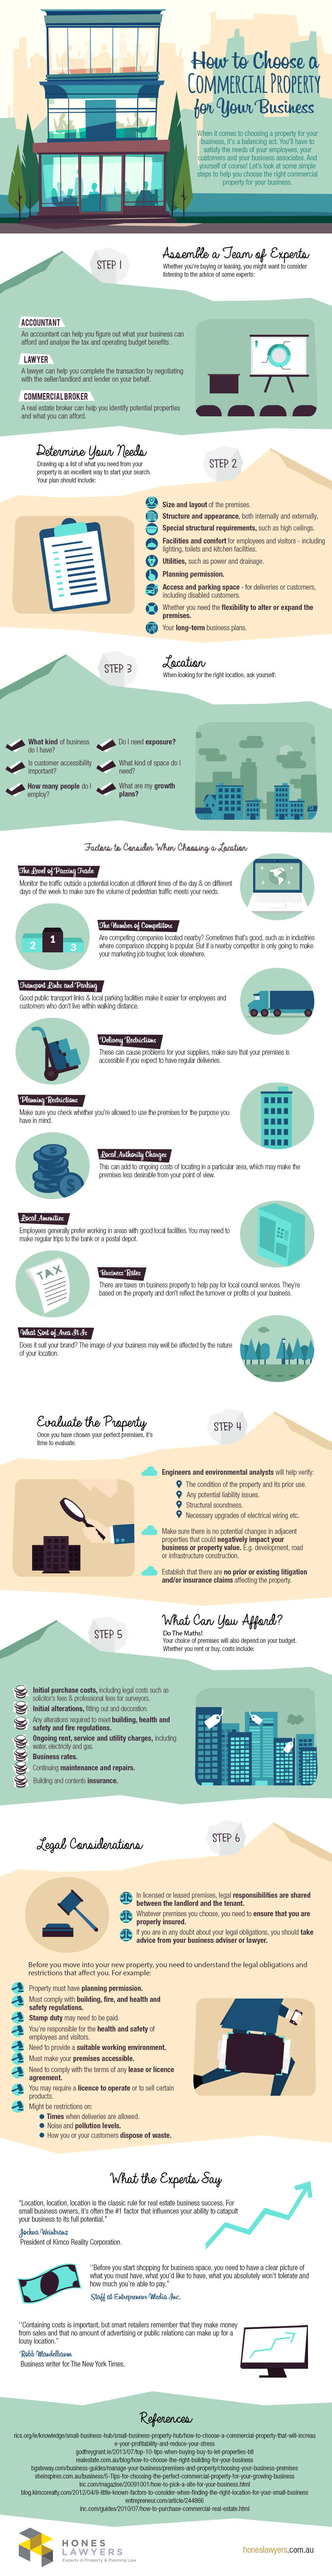 How-to-Choose-A-Commercial-Property-for-Your-Business-infographic